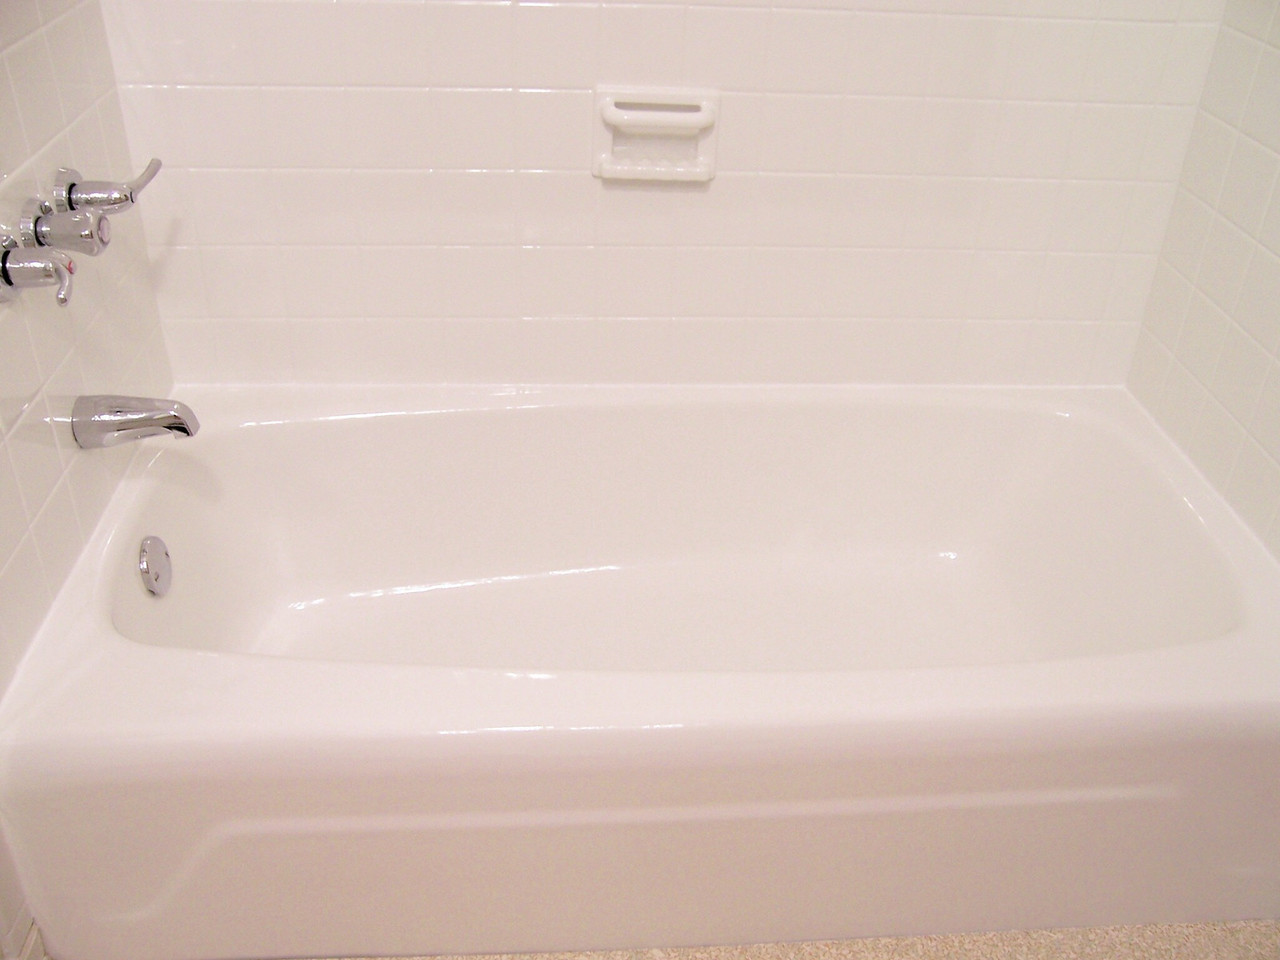 AFTER-The great thing about refinishing tile is that it seals the grout. No more ugly grout or re-grouting.